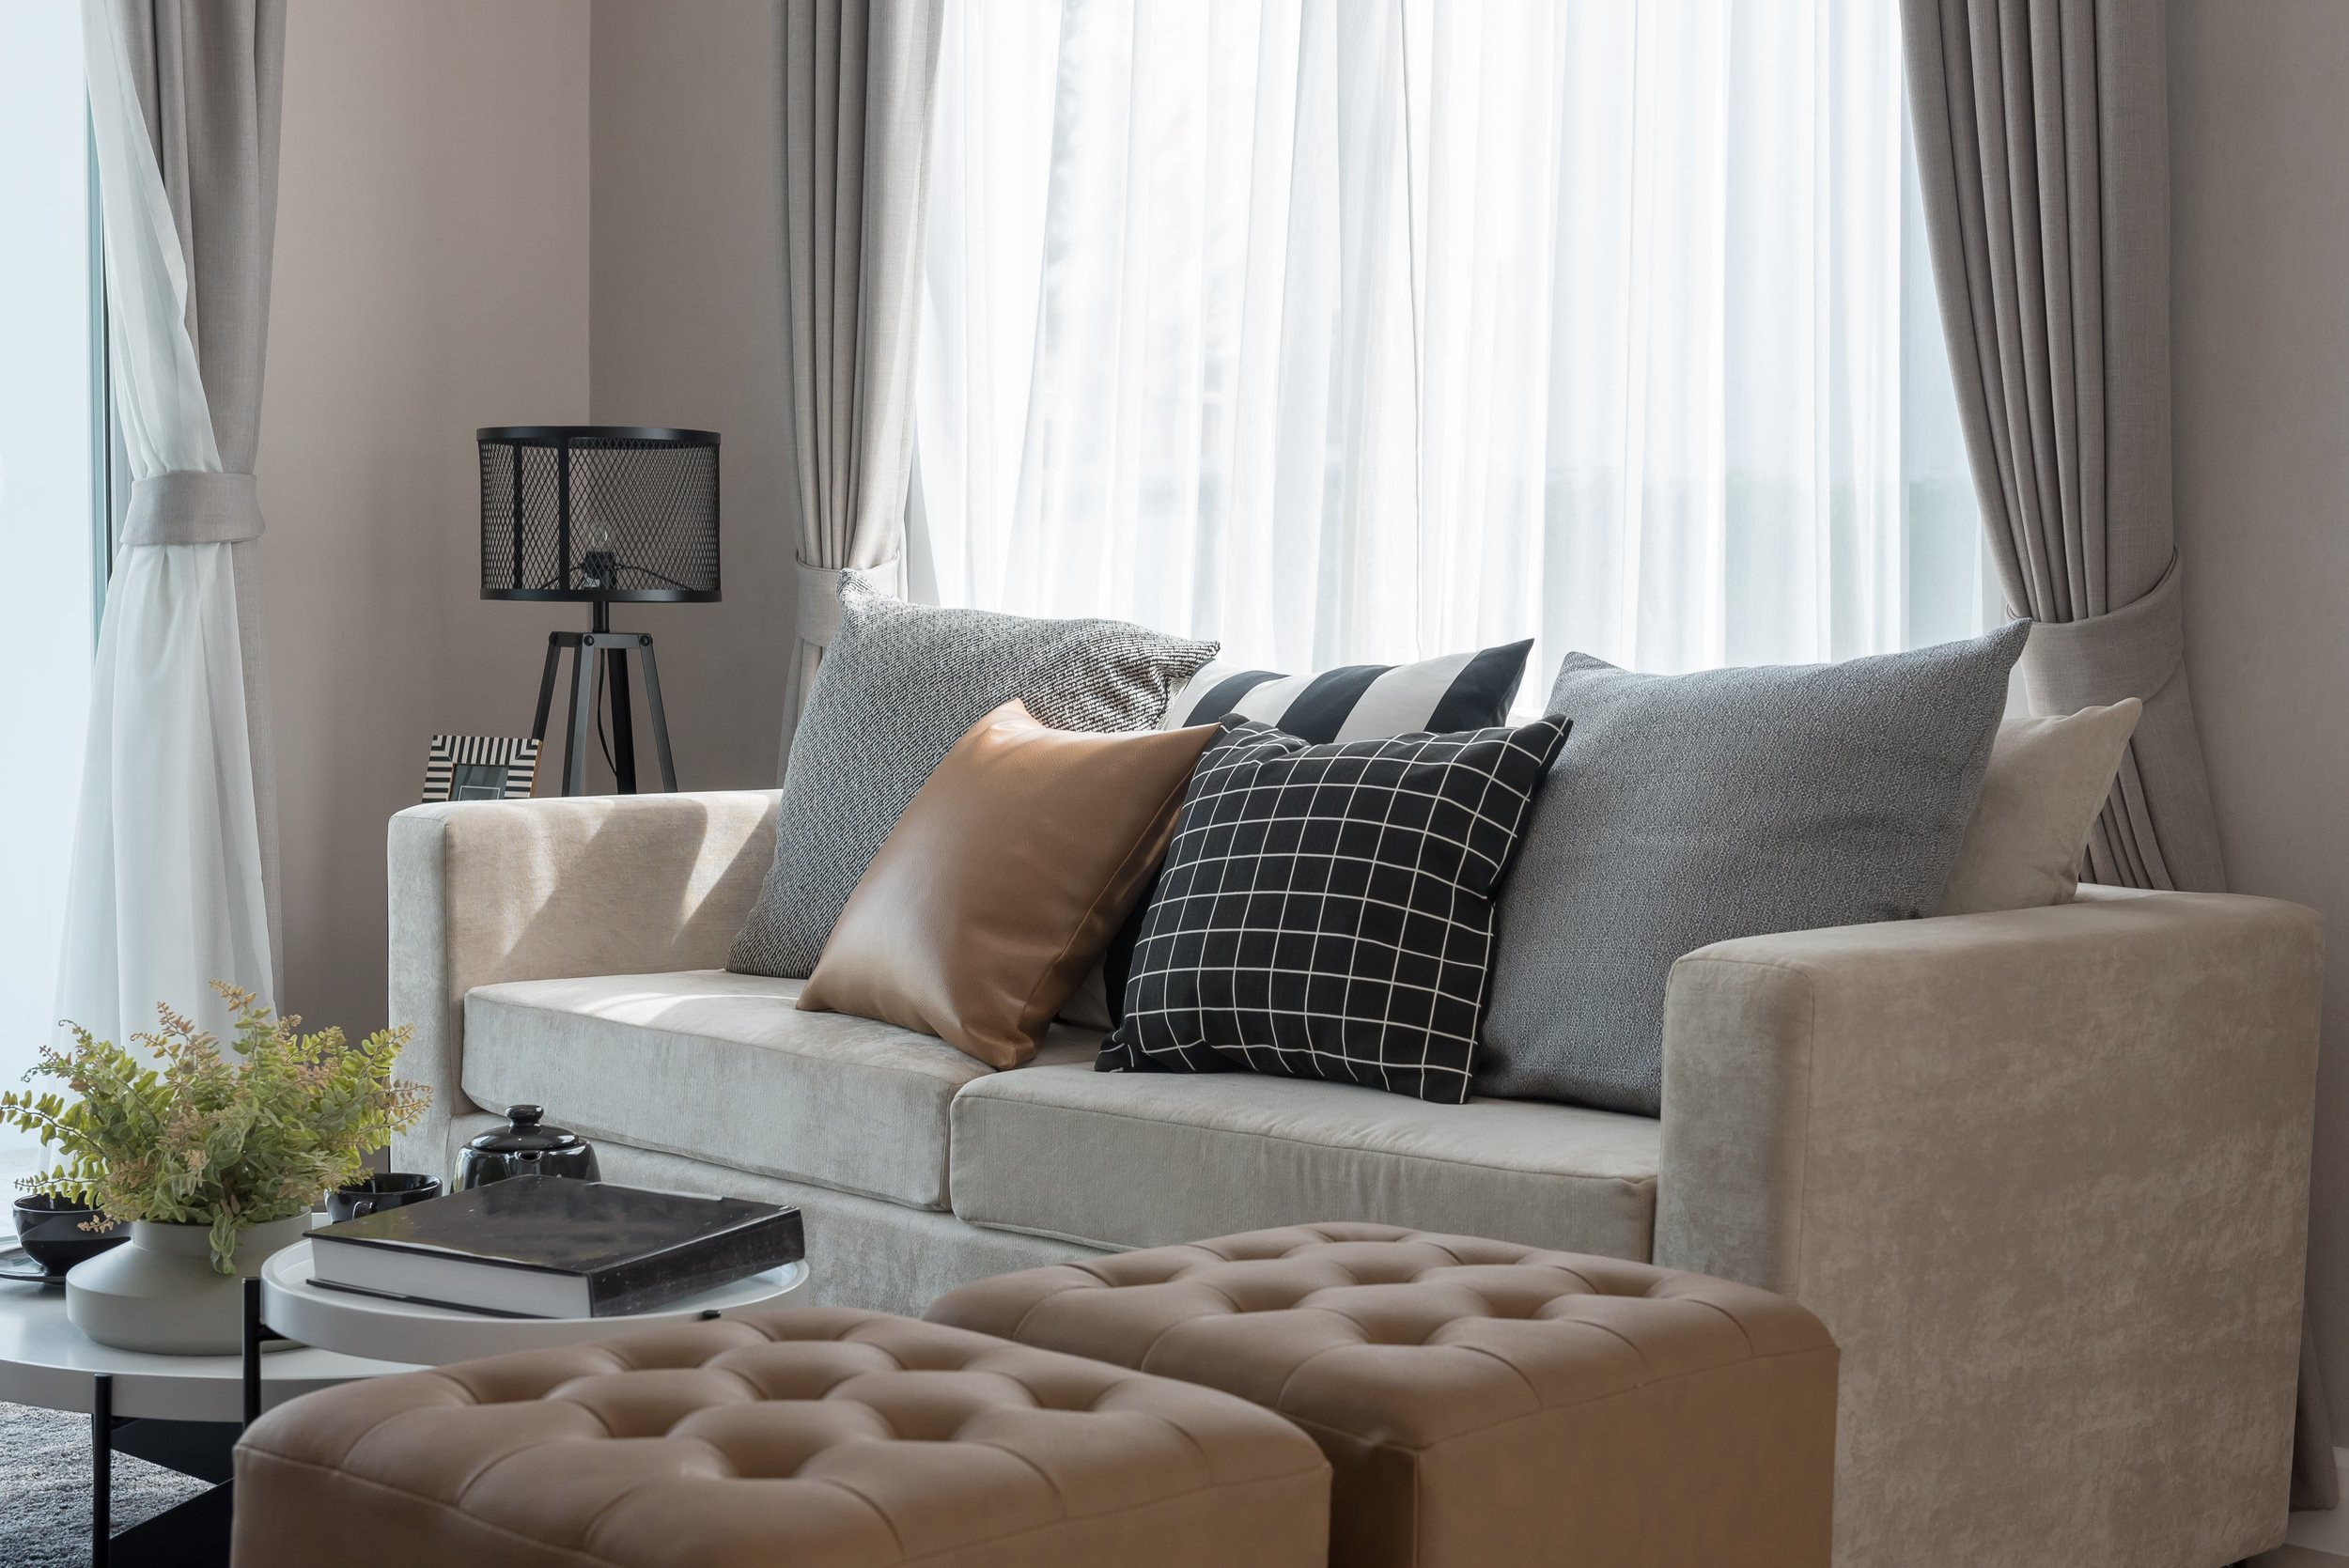 About us - We are a small, husband-and-wife duo owned and operated business based on Waiheke Island, New Zealand that specialises in the supply and installation of a wide range of Blinds, Curtains, and Shutters.